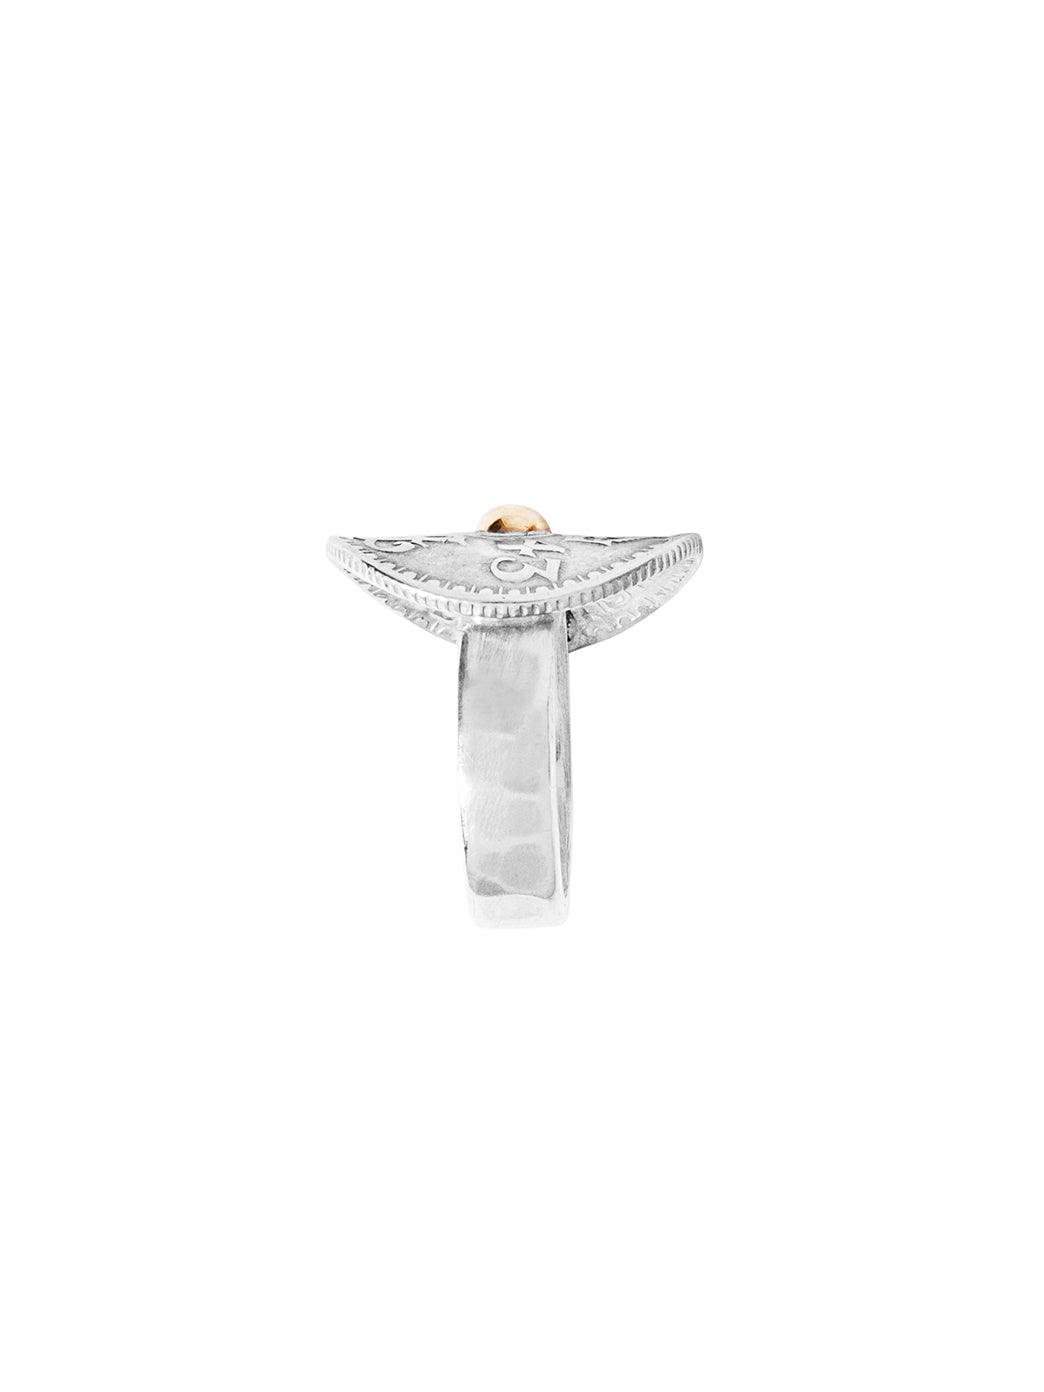 Fiorina Jewellery Joy Bent Pinkie Ring Shank View